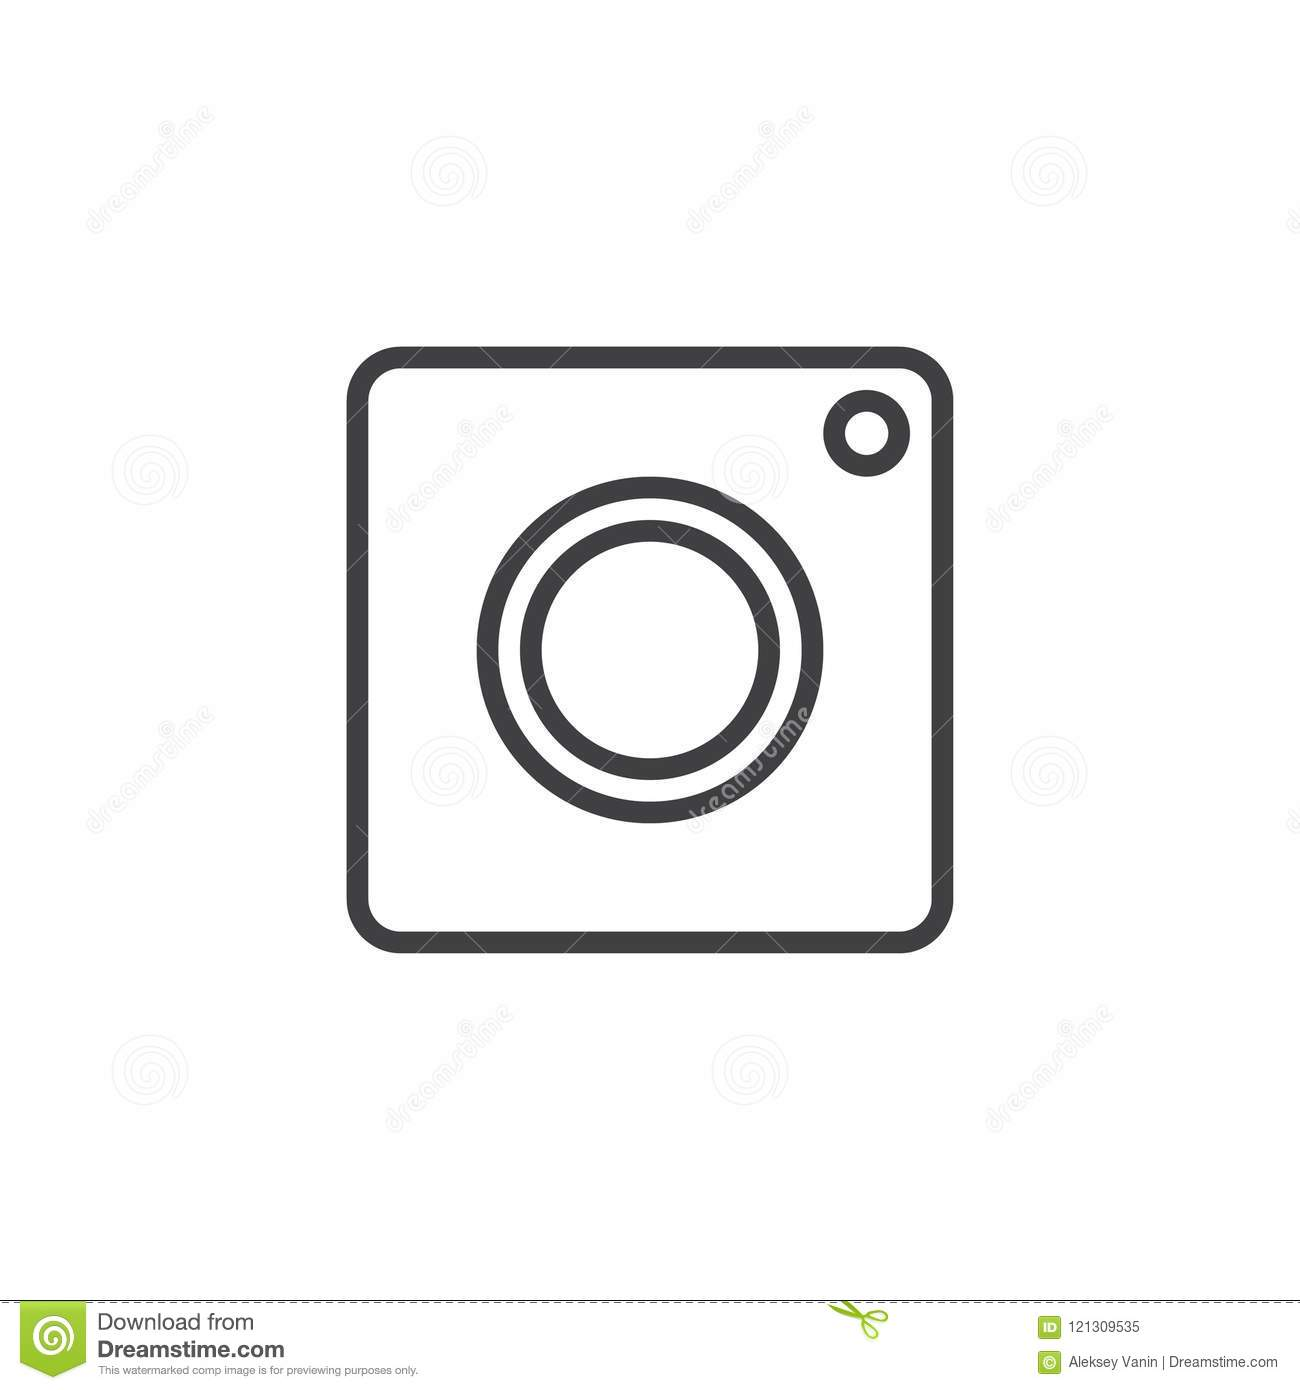 Instagram Camera Outline Icon Stock Vector Illustration Of